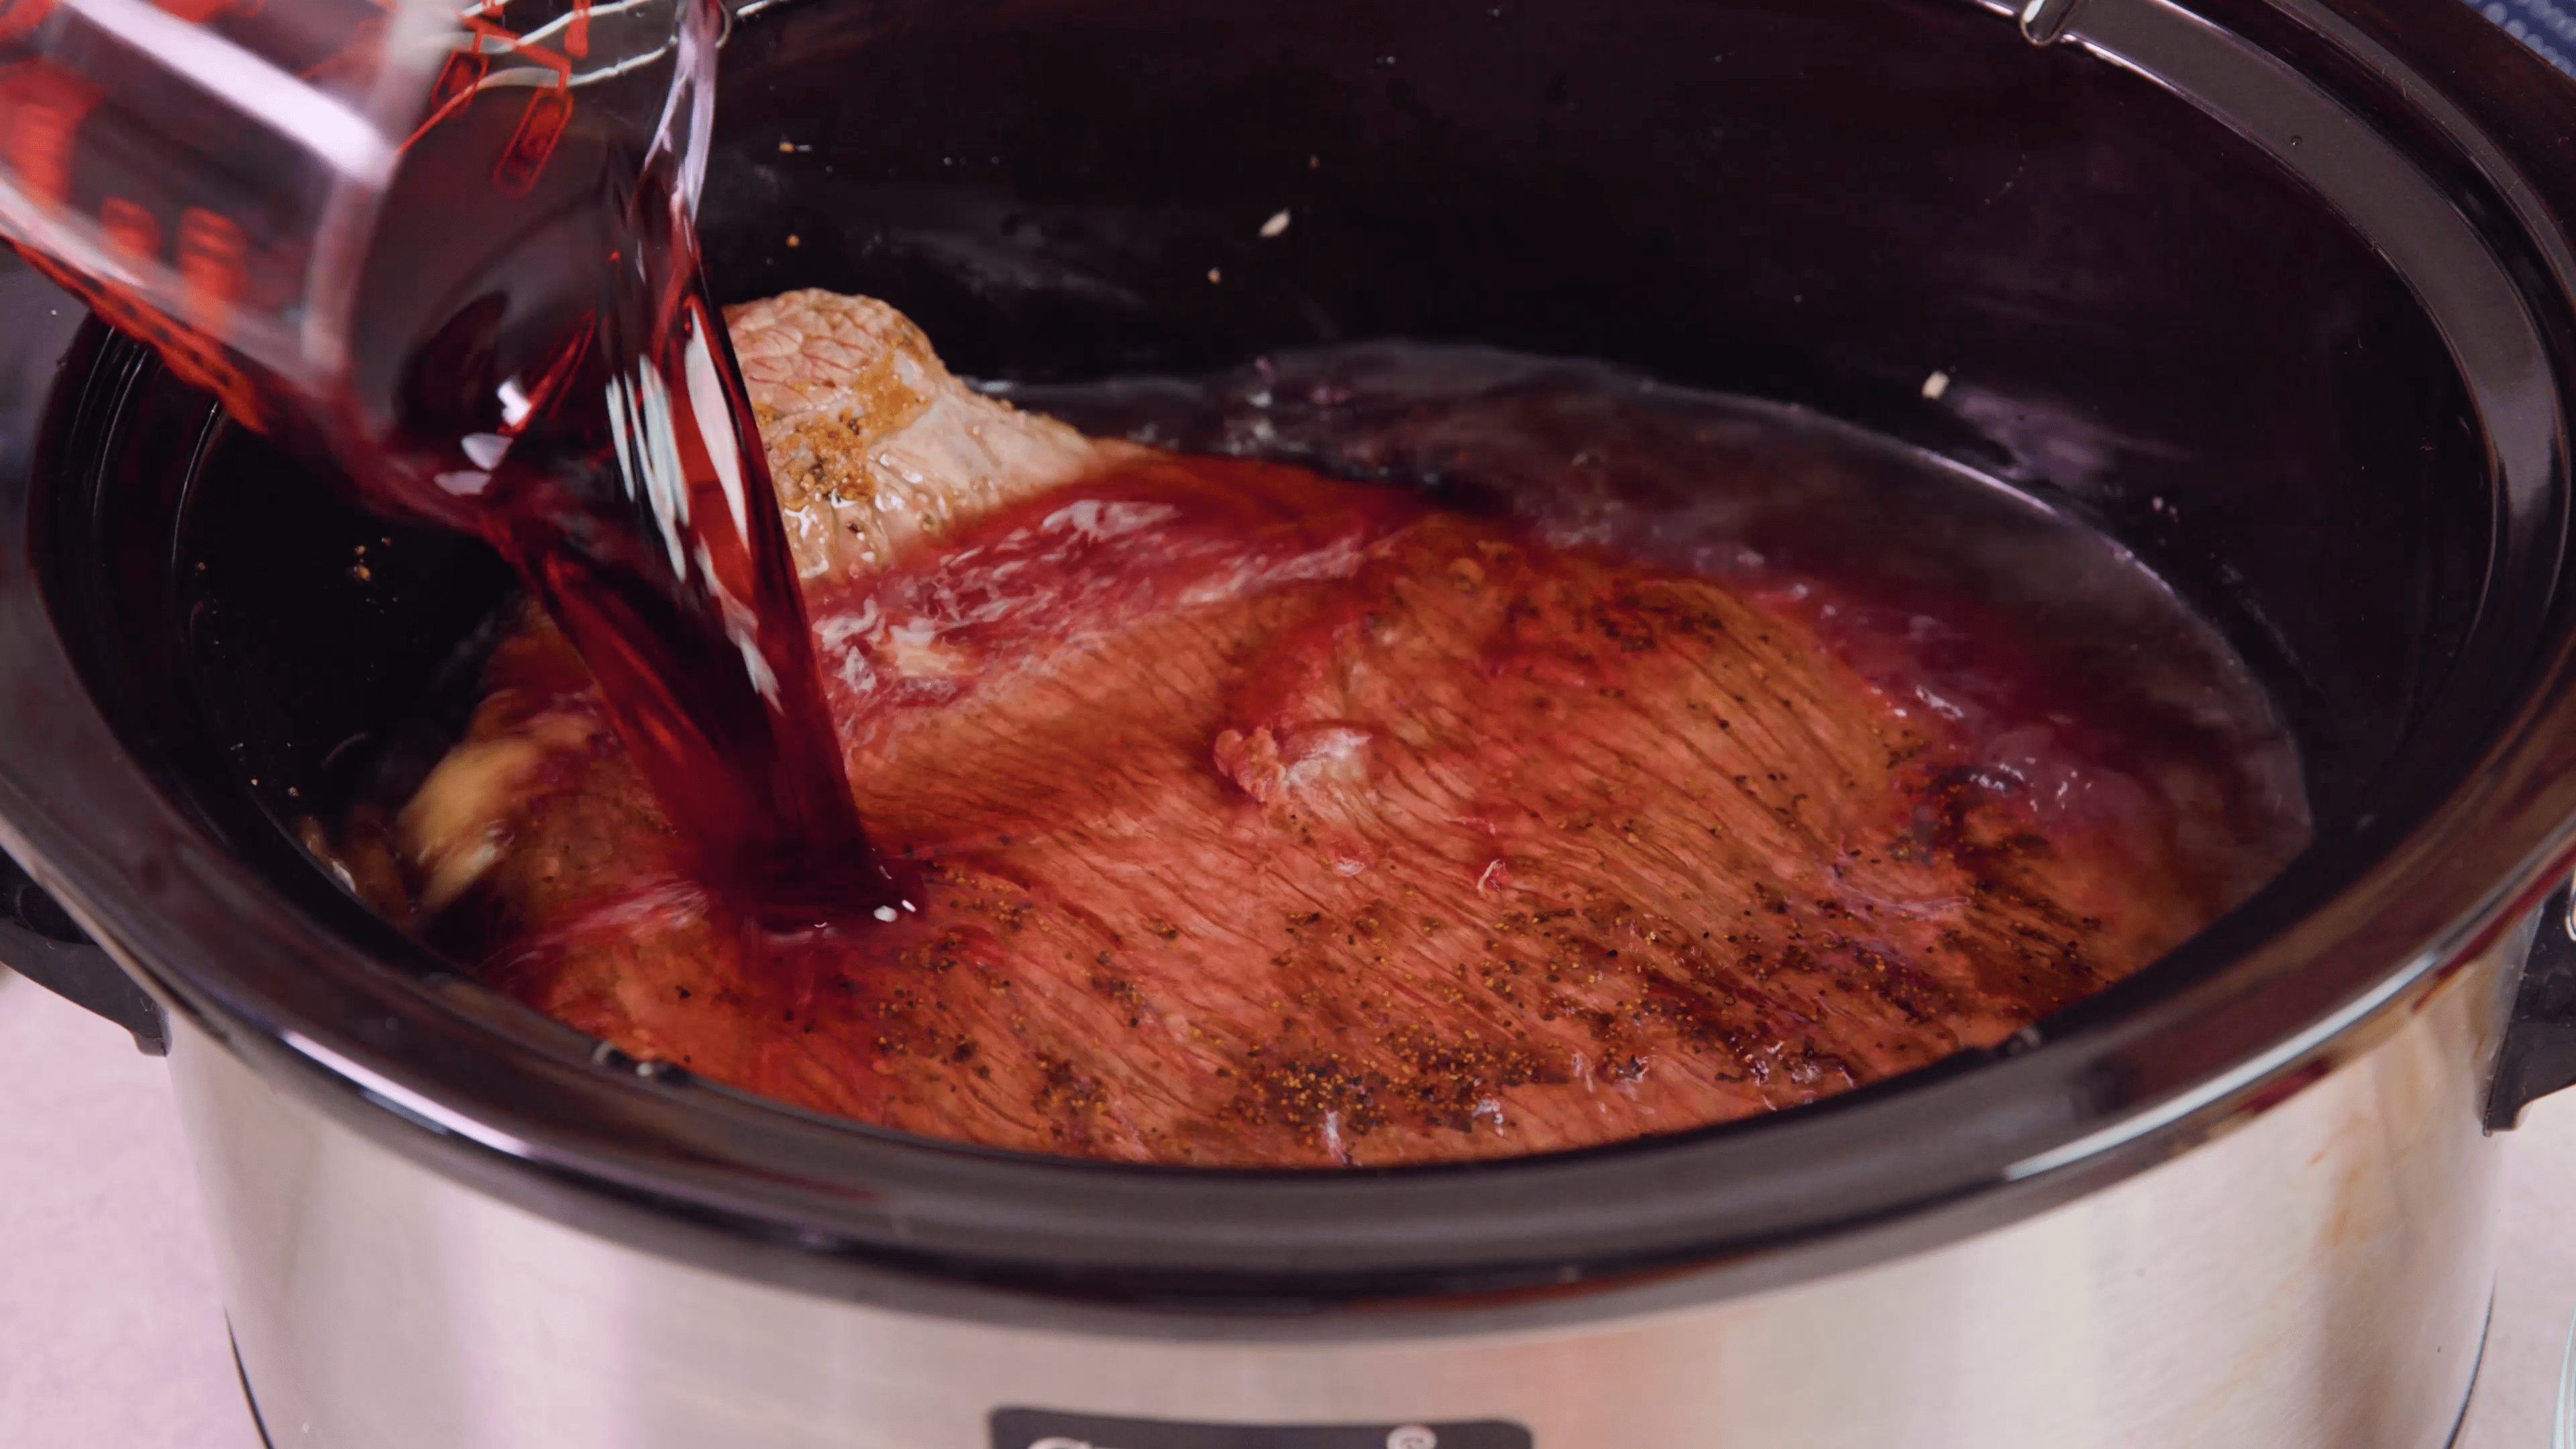 Red wine being poured onto the pot roast.